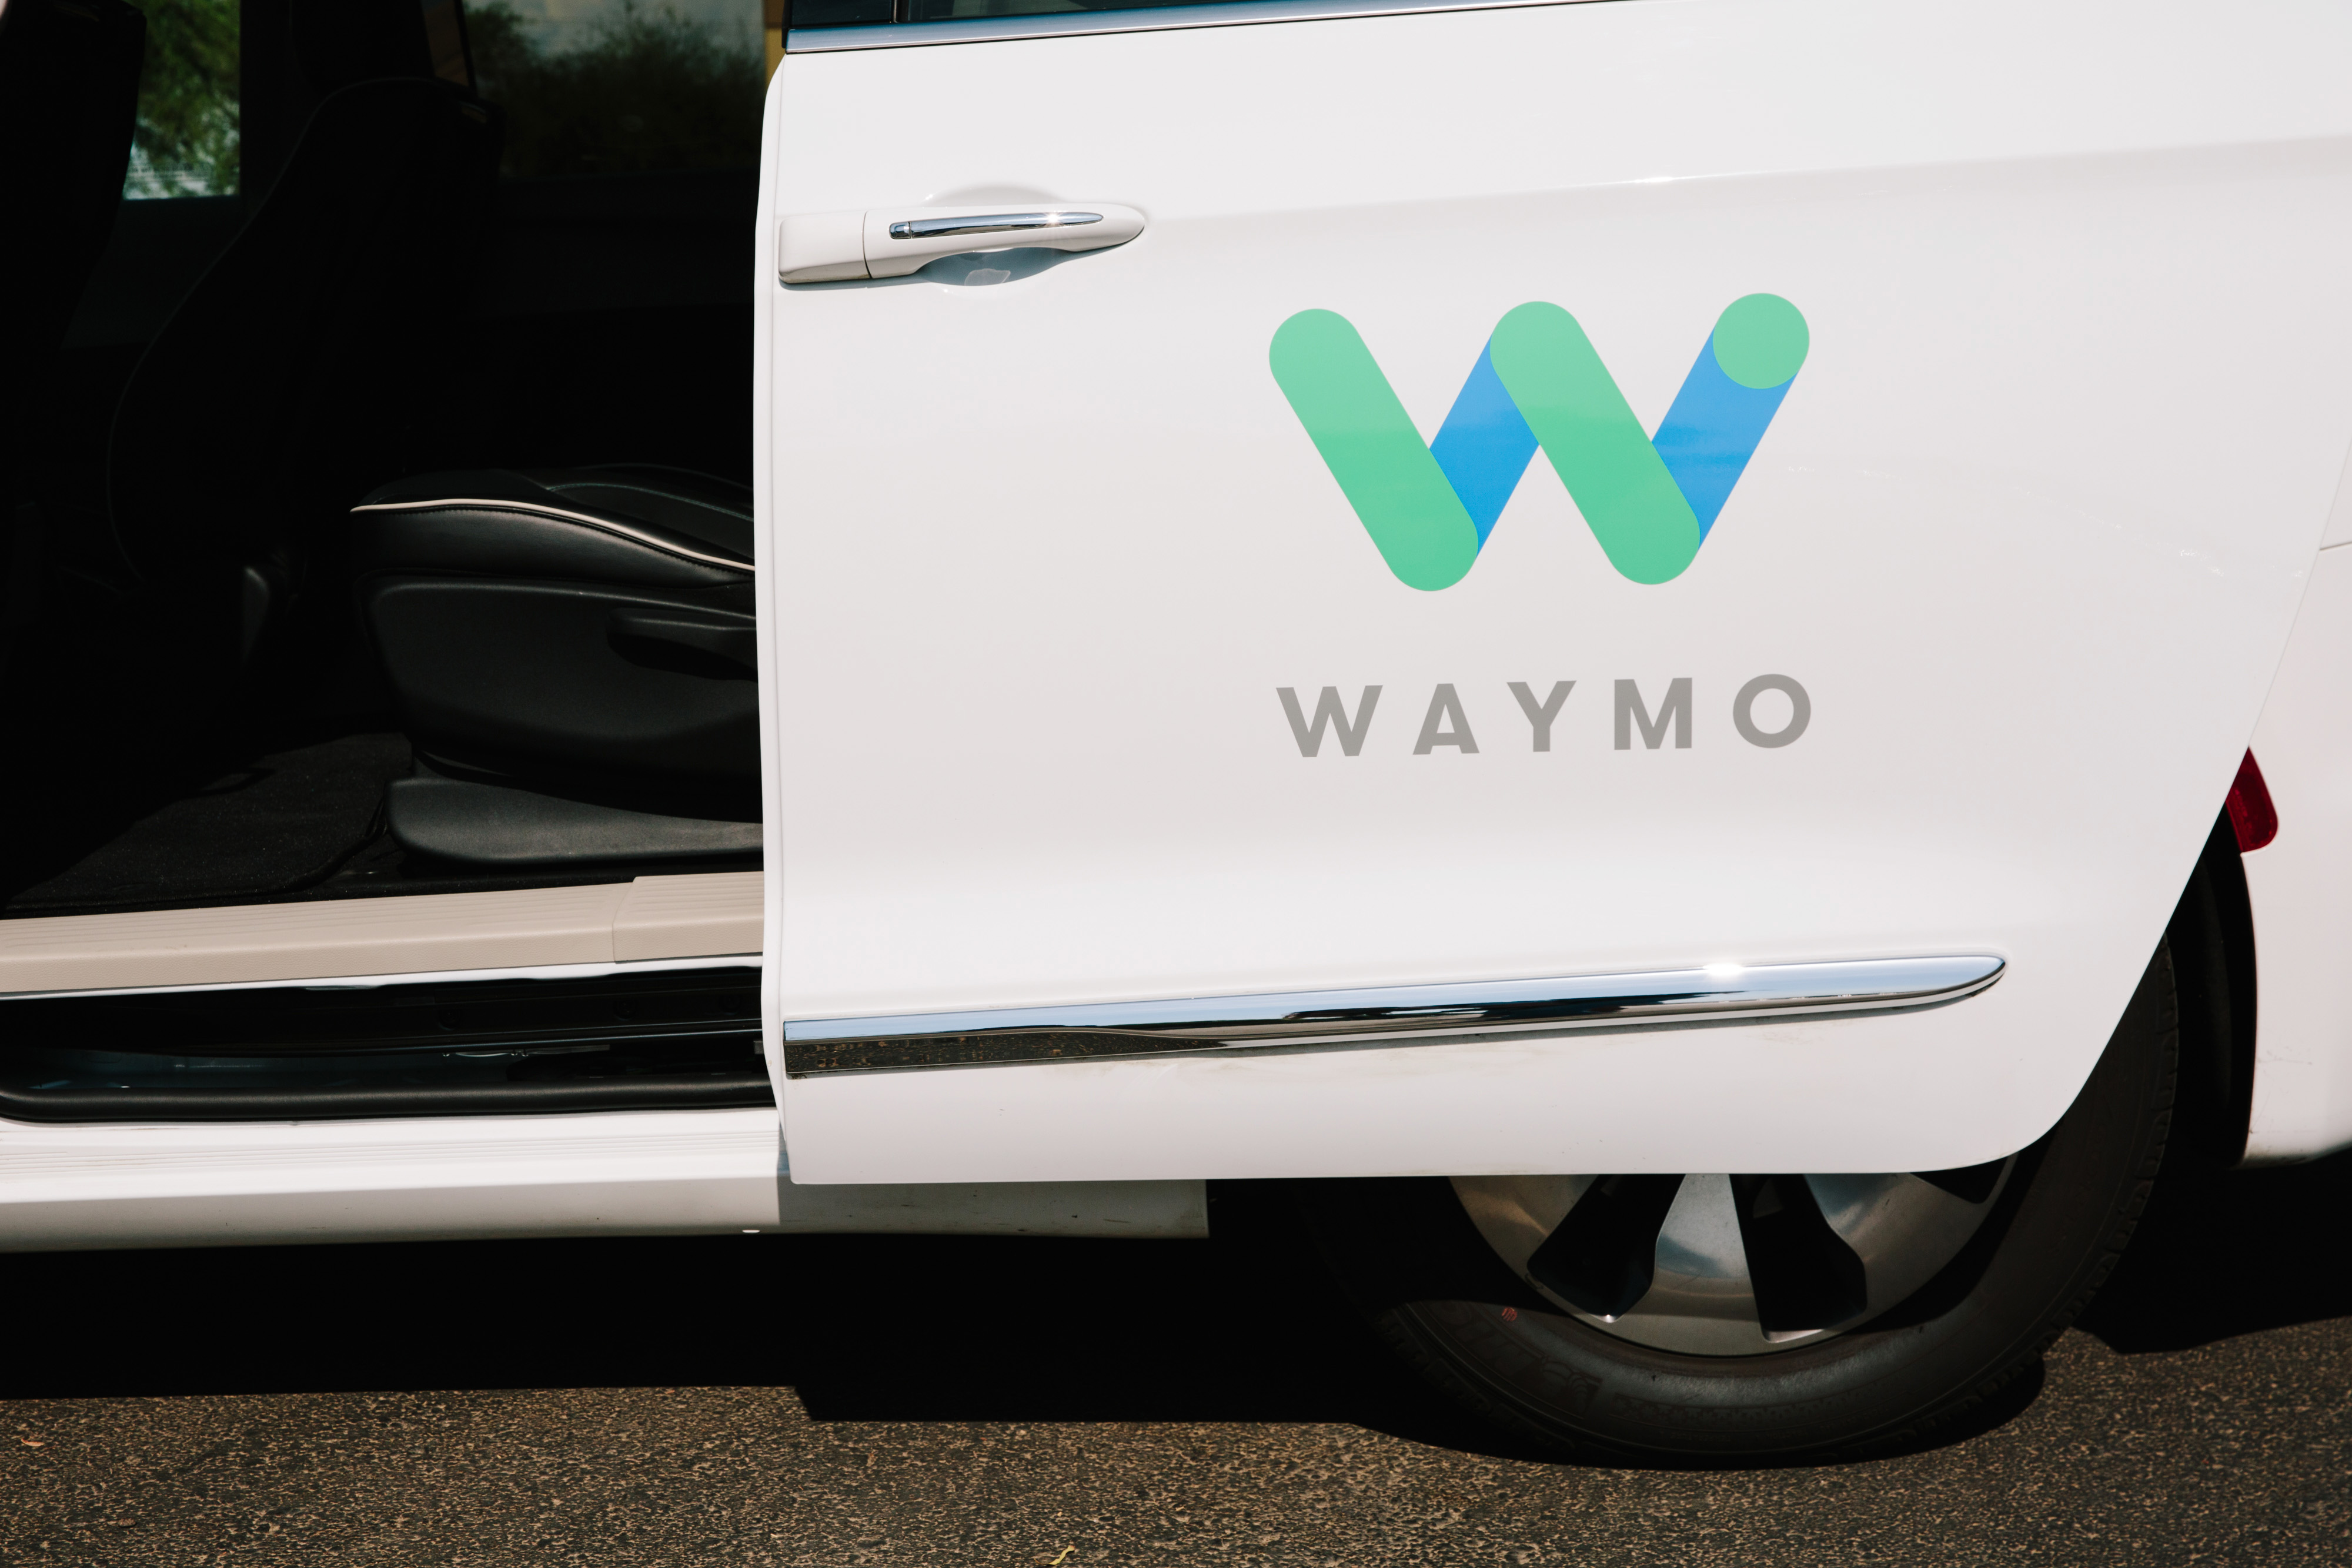 Report: Former top Waymo engineer altered code to go on